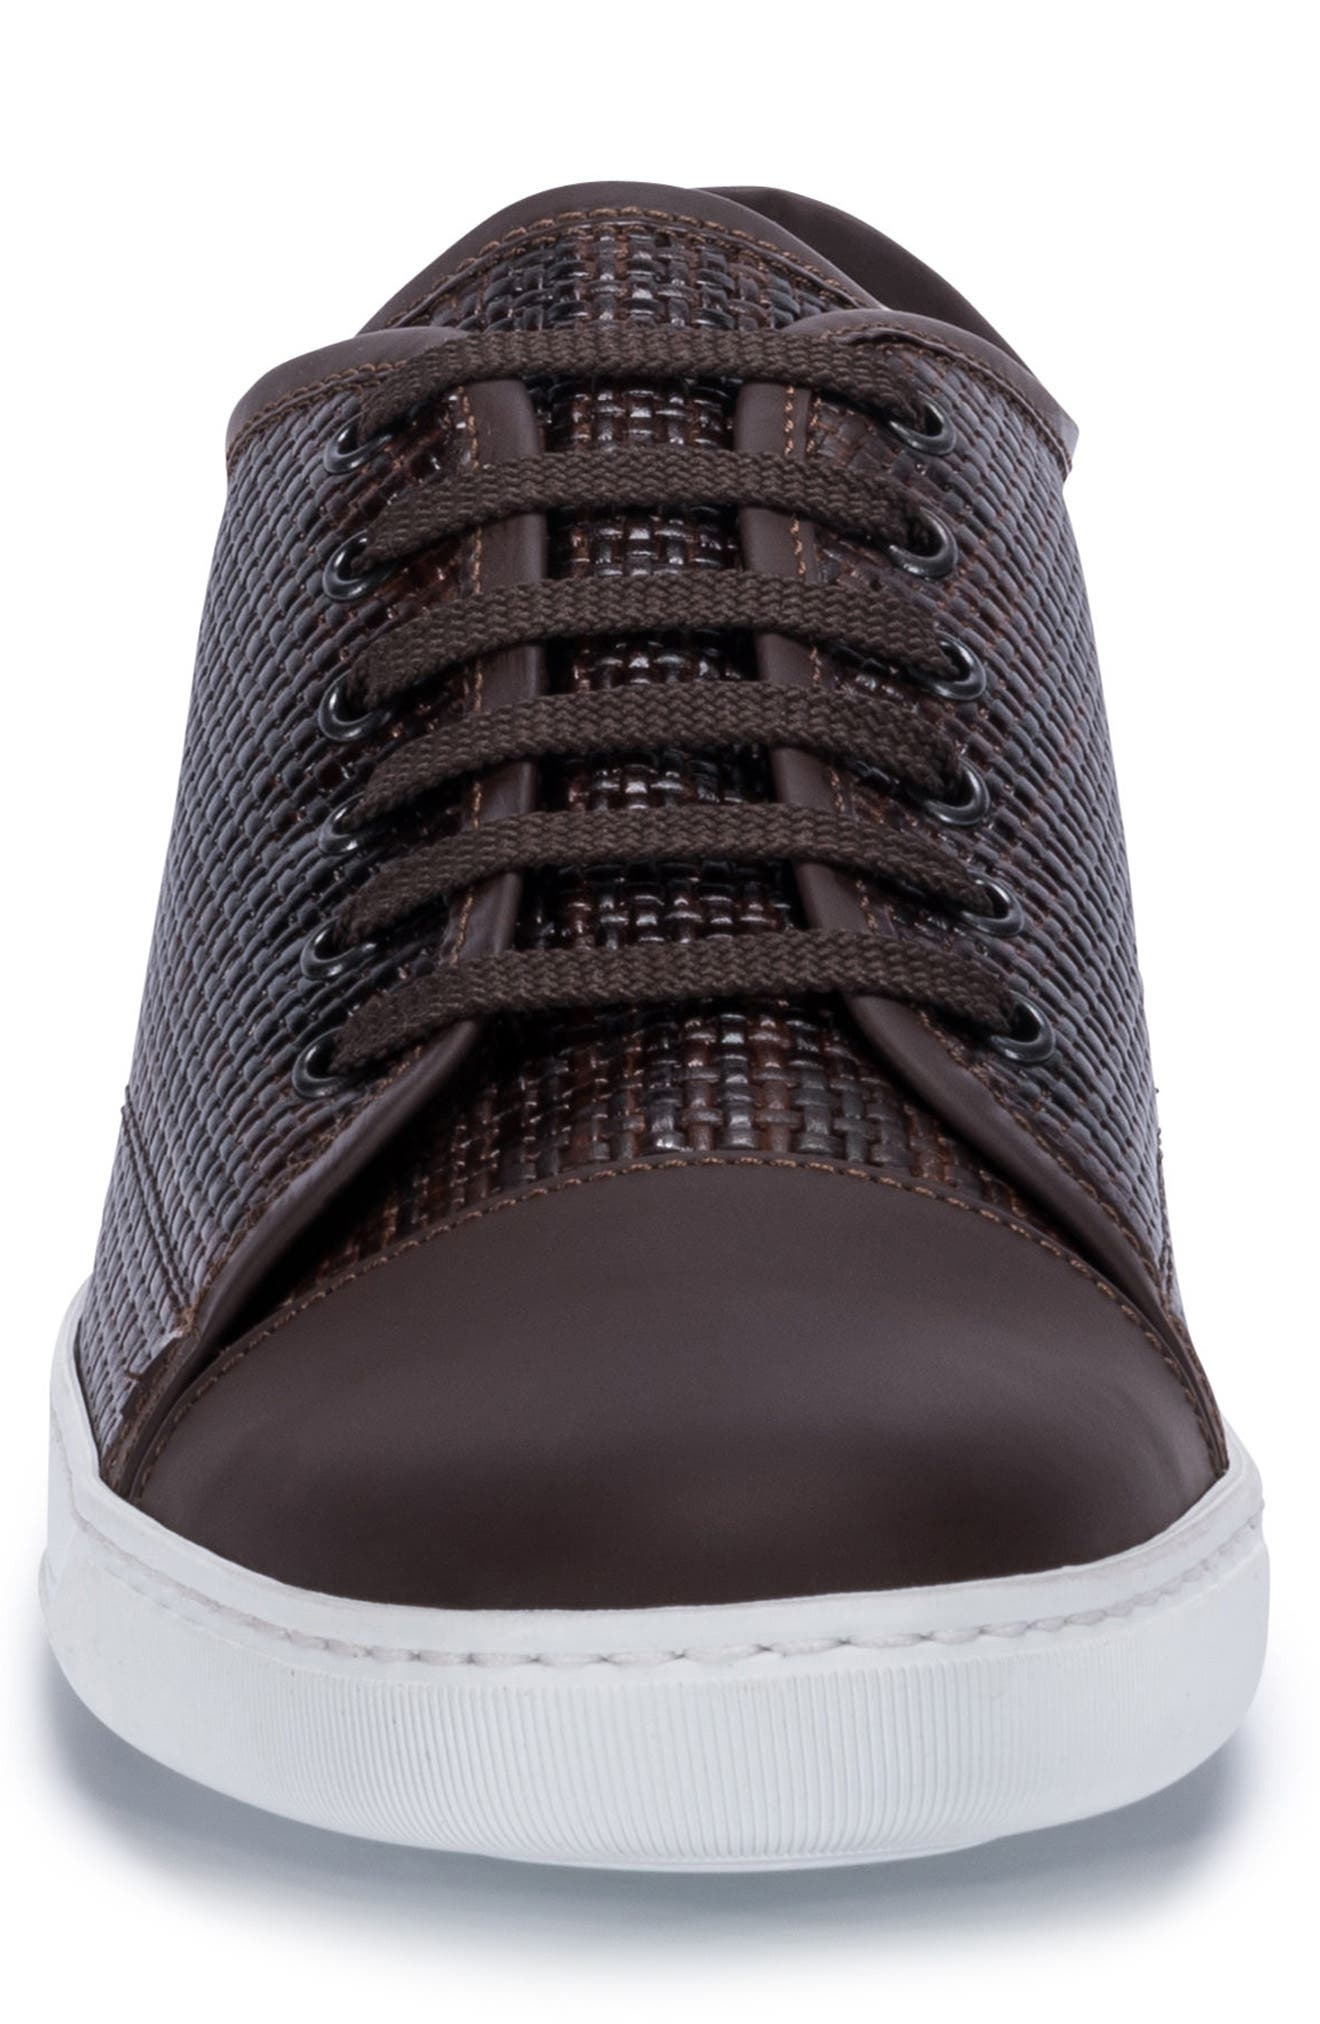 Cinque Terre Woven Cap Toe Sneaker,                             Alternate thumbnail 4, color,                             203